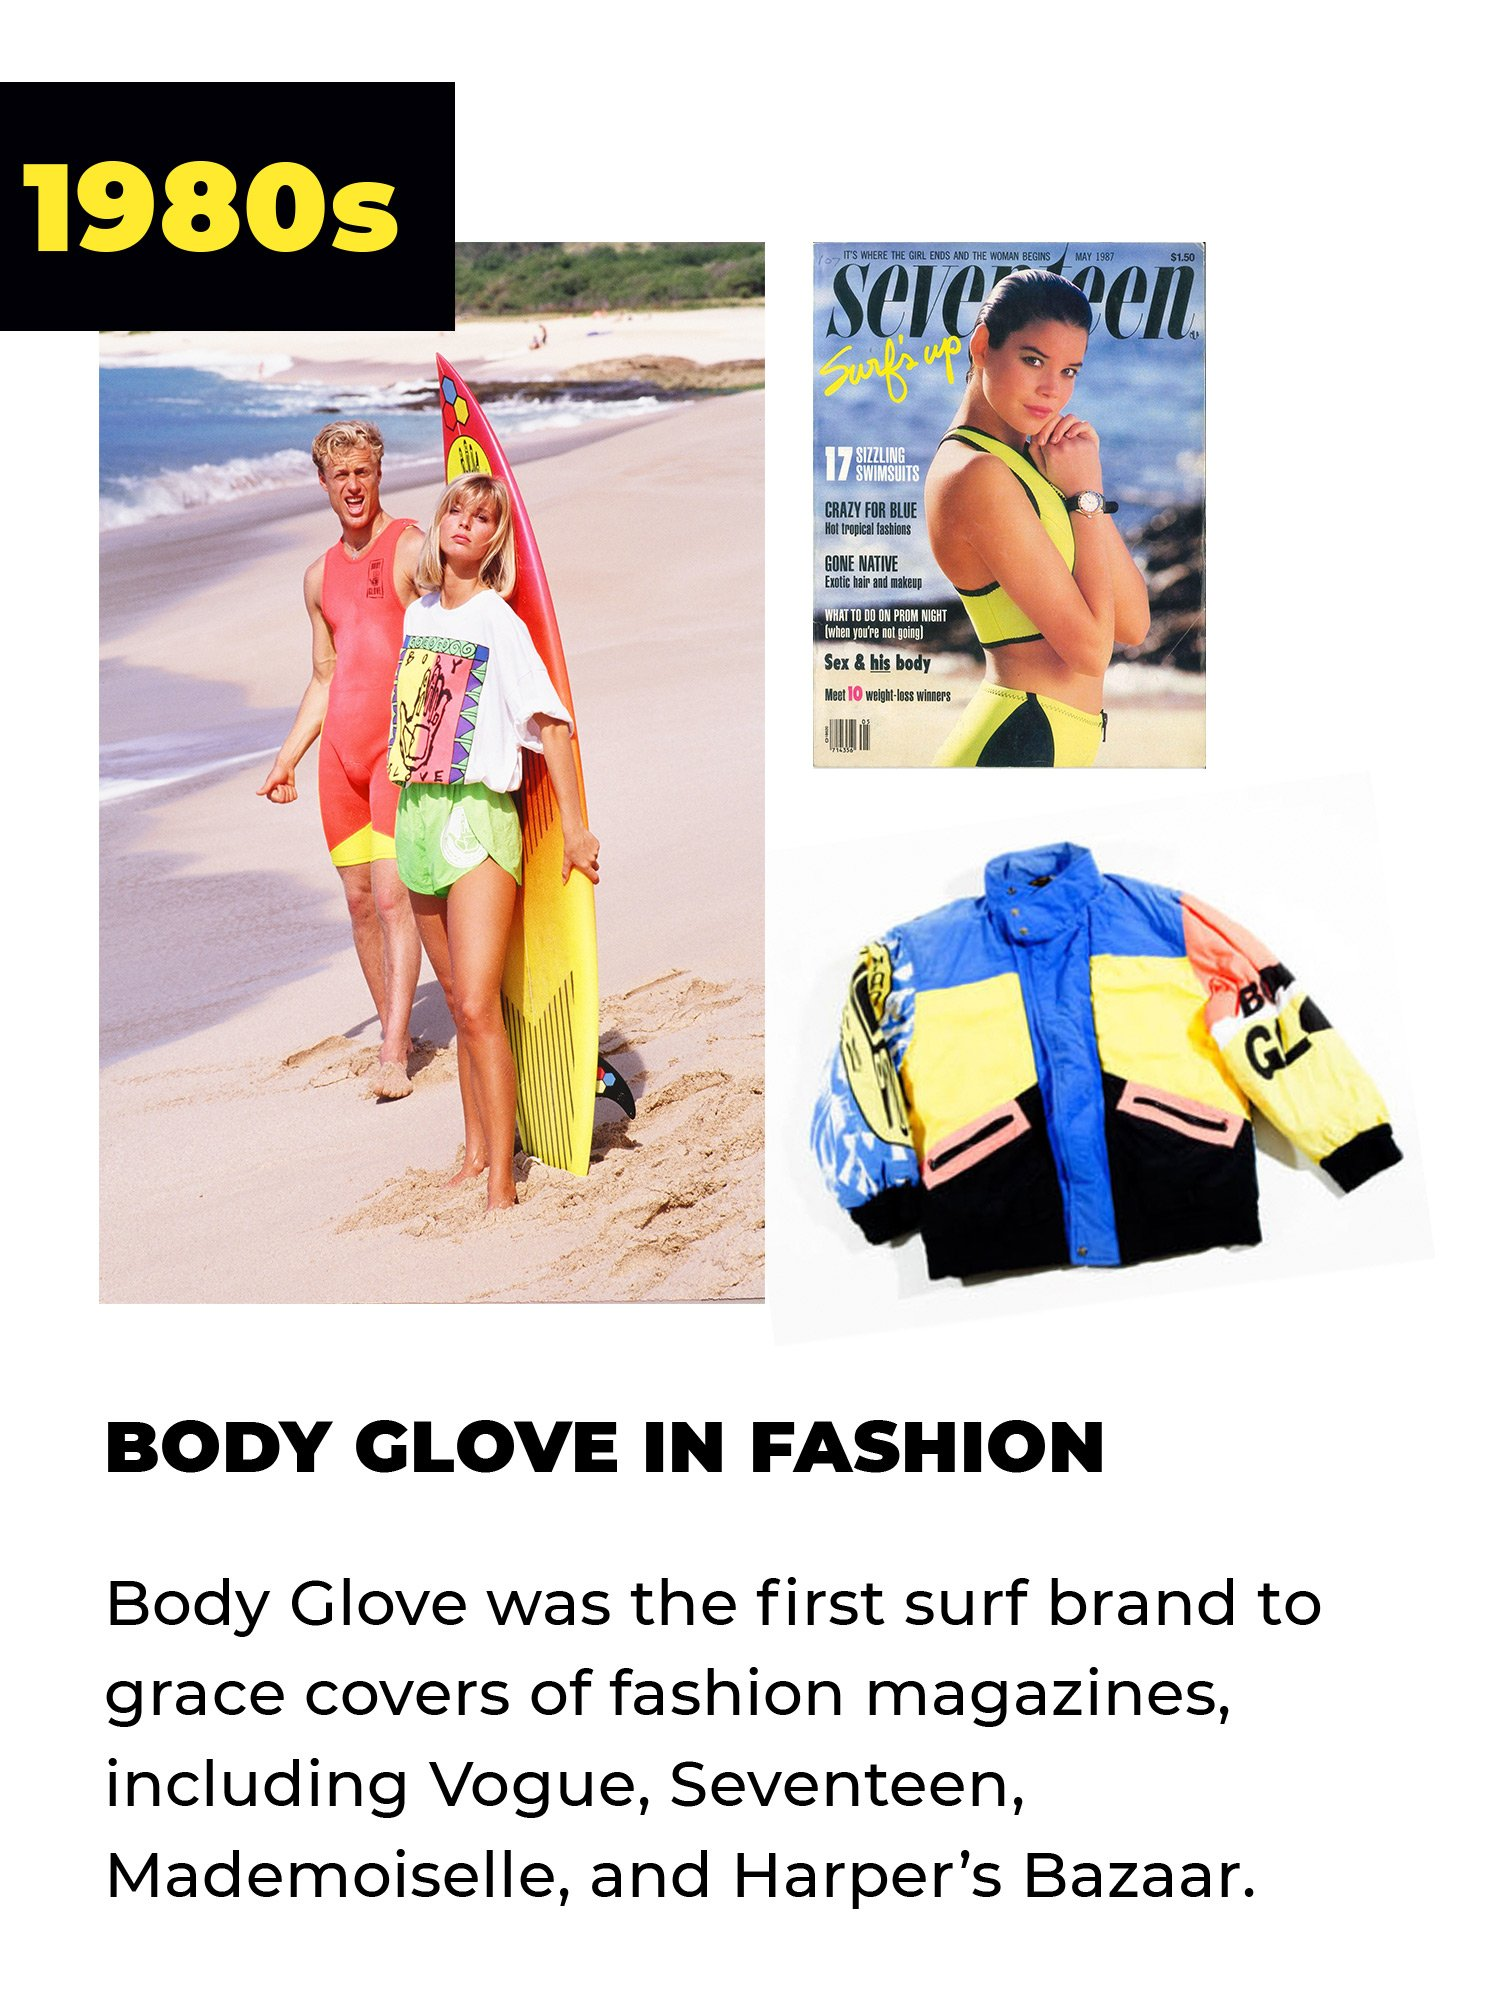 1980s | Body Glove in Fashion | Body Glove was the first surf brand to grace covers of fashion magazines, including Vogue, Seventeen, Mademoiselle, and Harper's Bazaar.